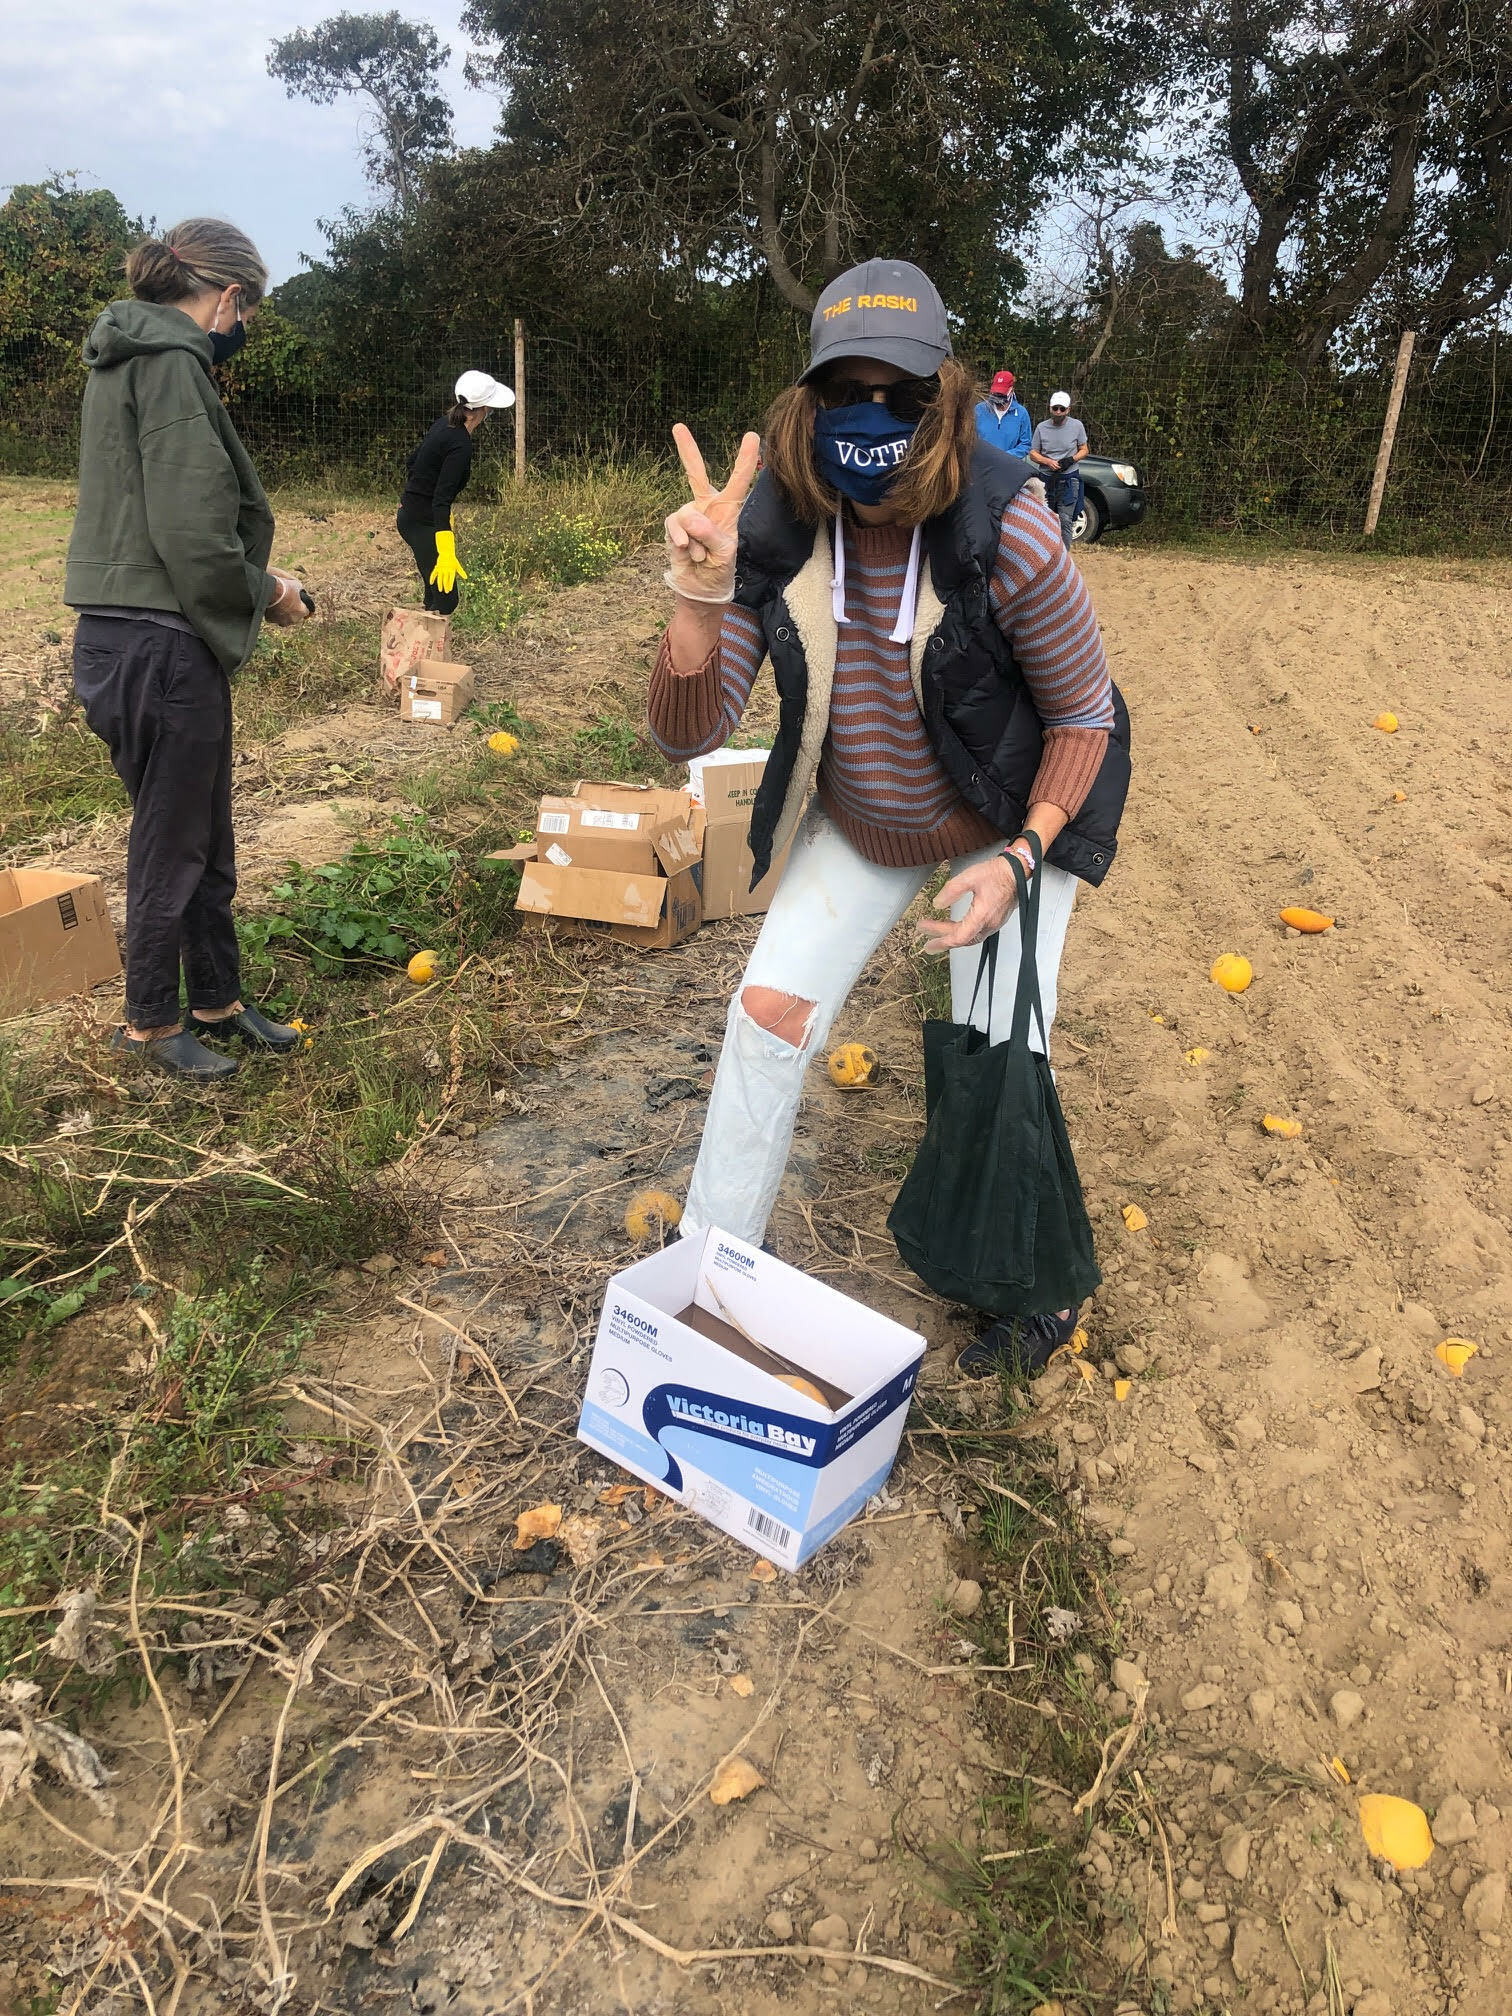 Members of Temple Adas Israel's social justice committee gleaned produce from a farm to be donated to local food pantries. COURTESY TEMPLE ADAS ISRAEL